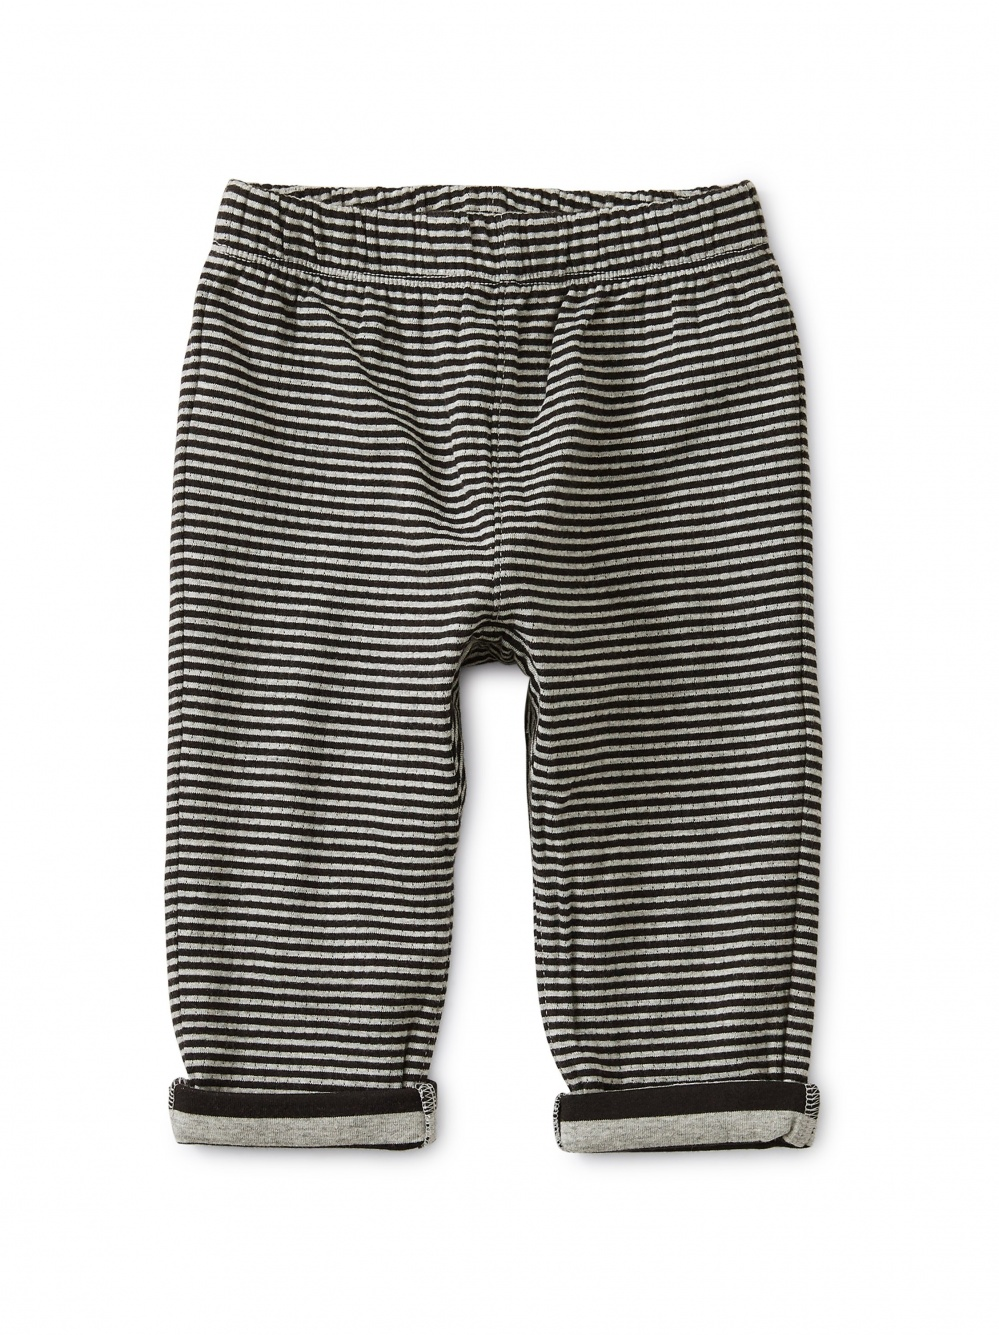 Stripe Double Knit Baby Jogger